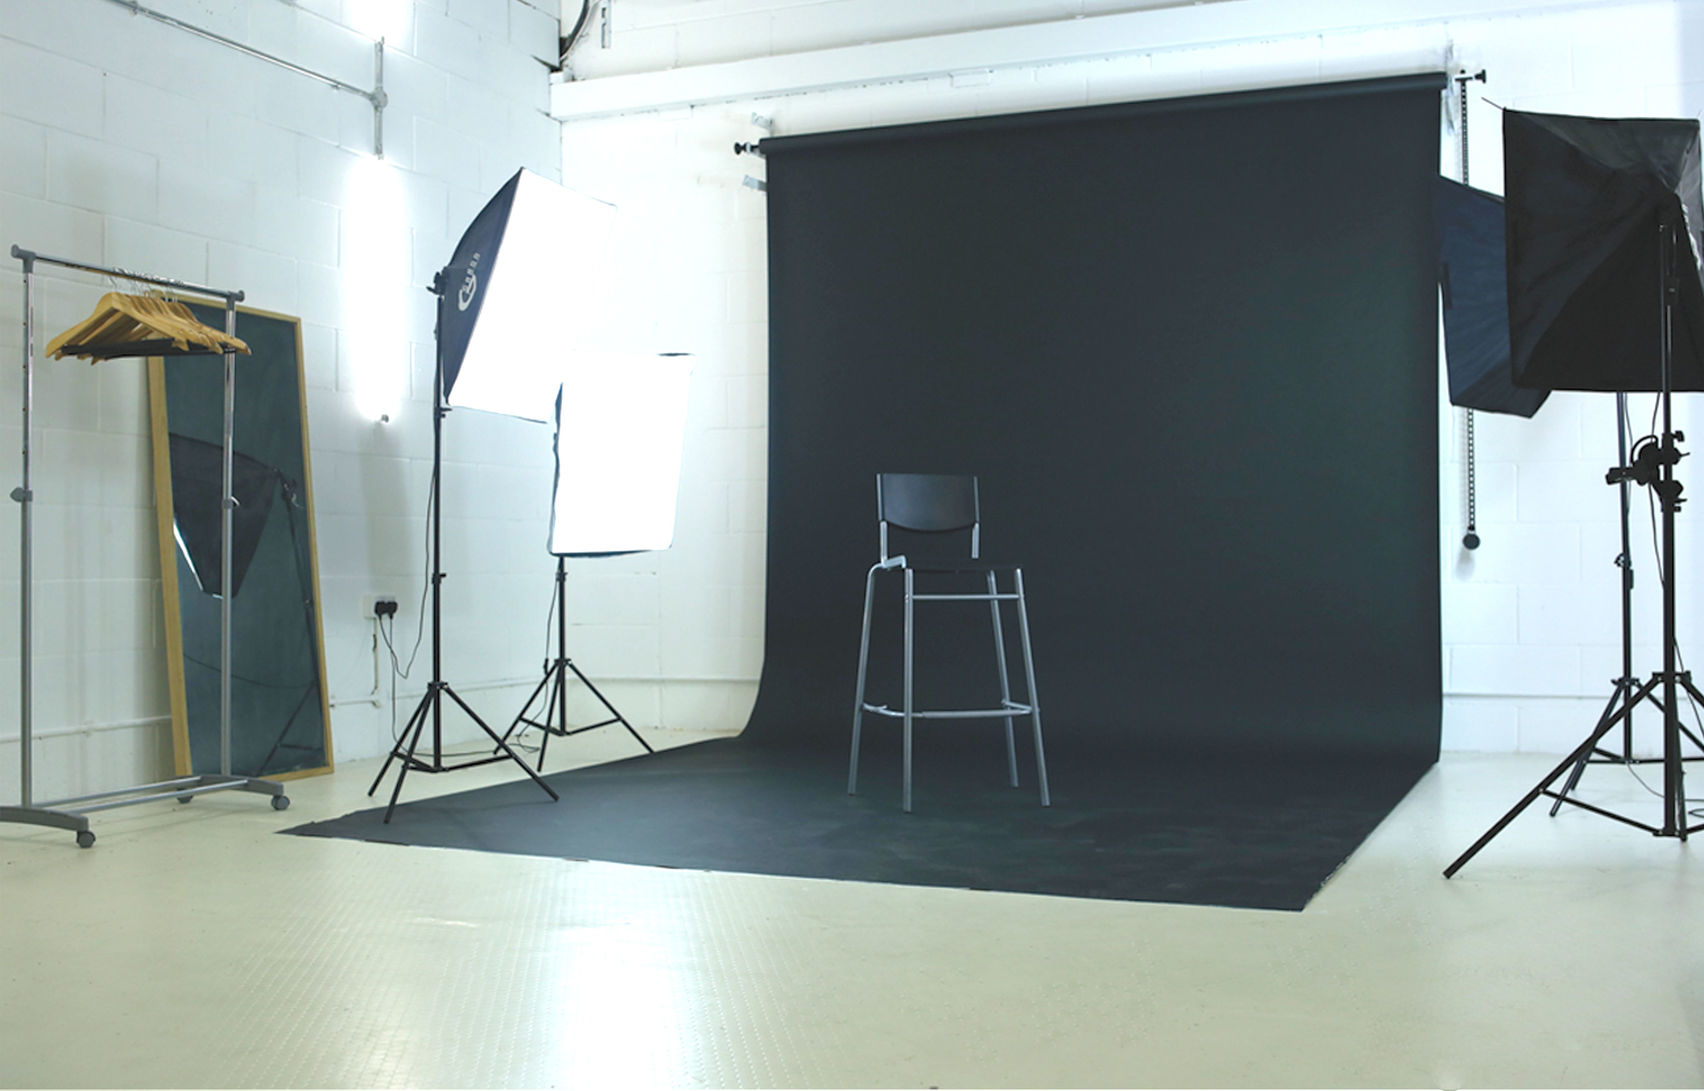 Photography/Video Studio 1 of 2, Indra Studios